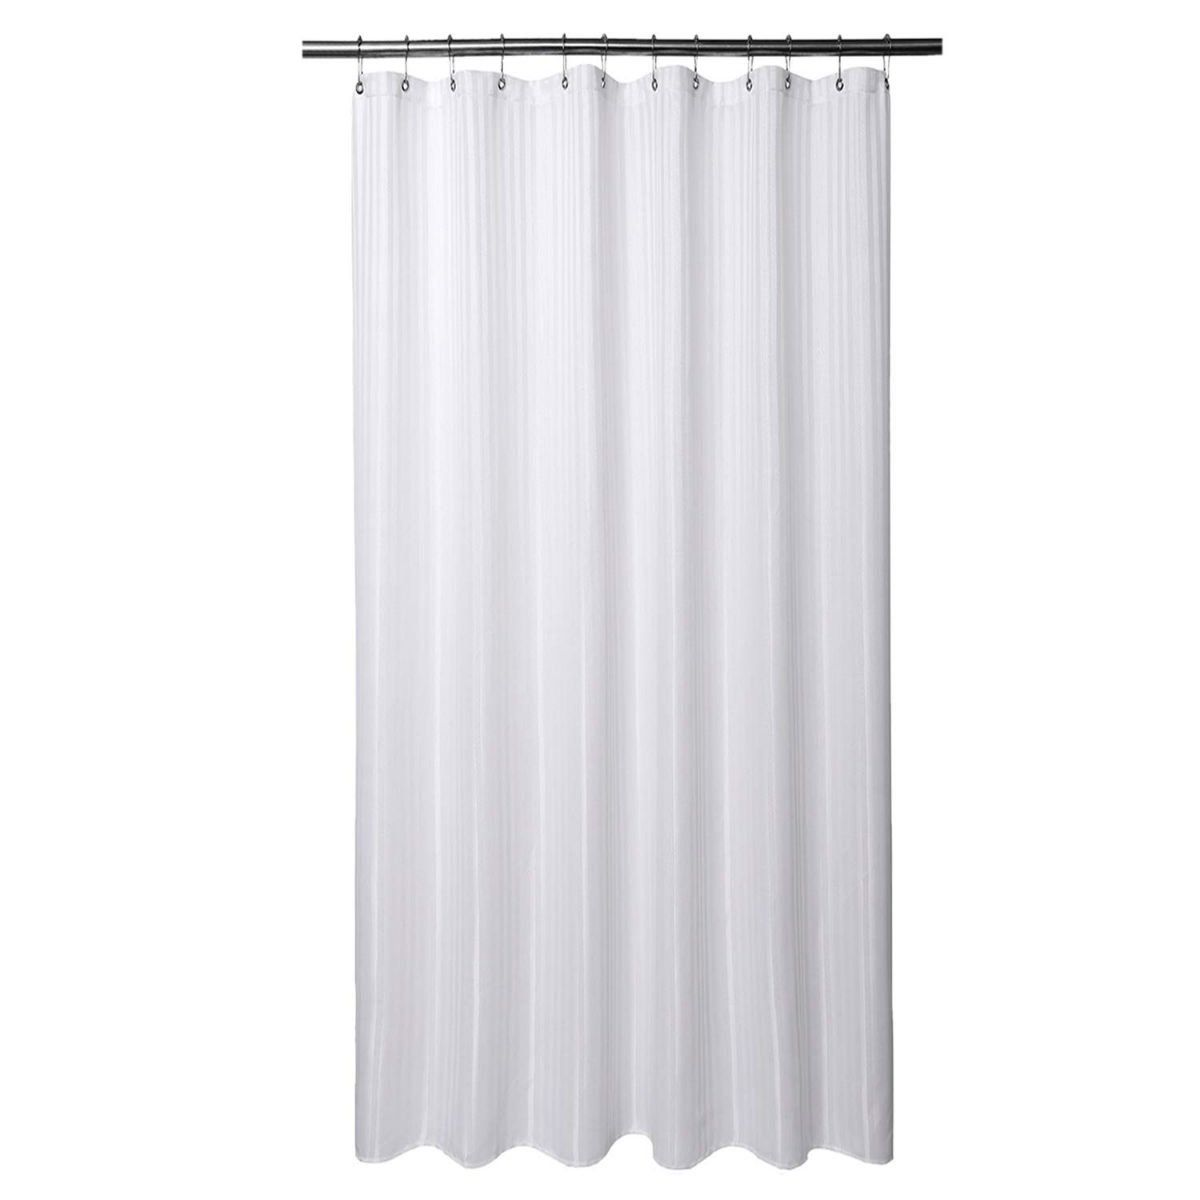 The Best Shower Curtains According To Happy Homeowners Cool